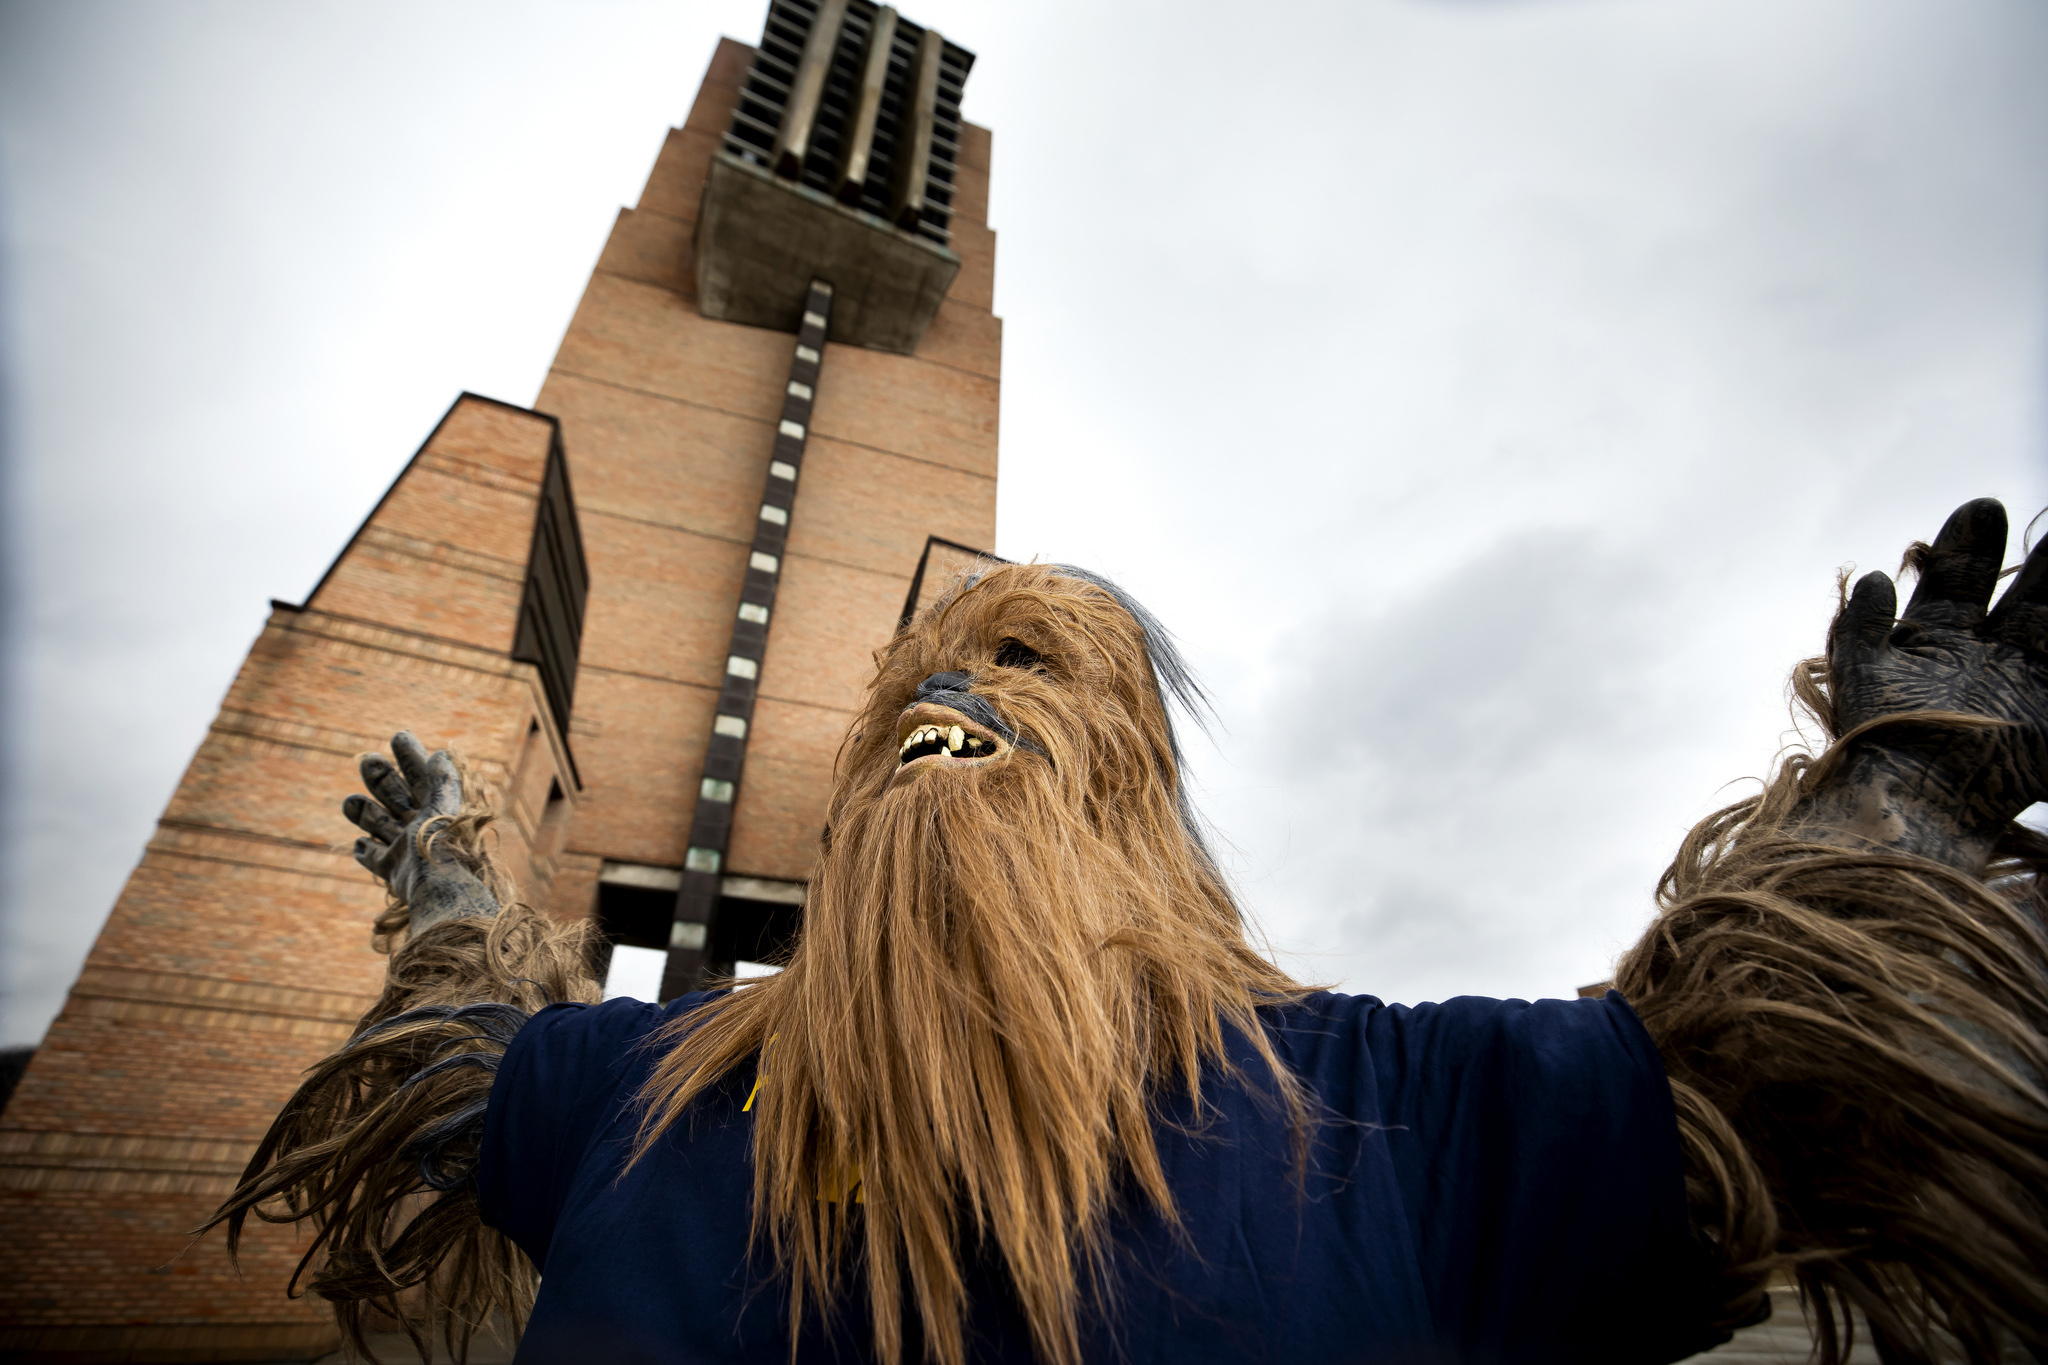 A photograph of a person dressed up as Chewbacca on North Campus.